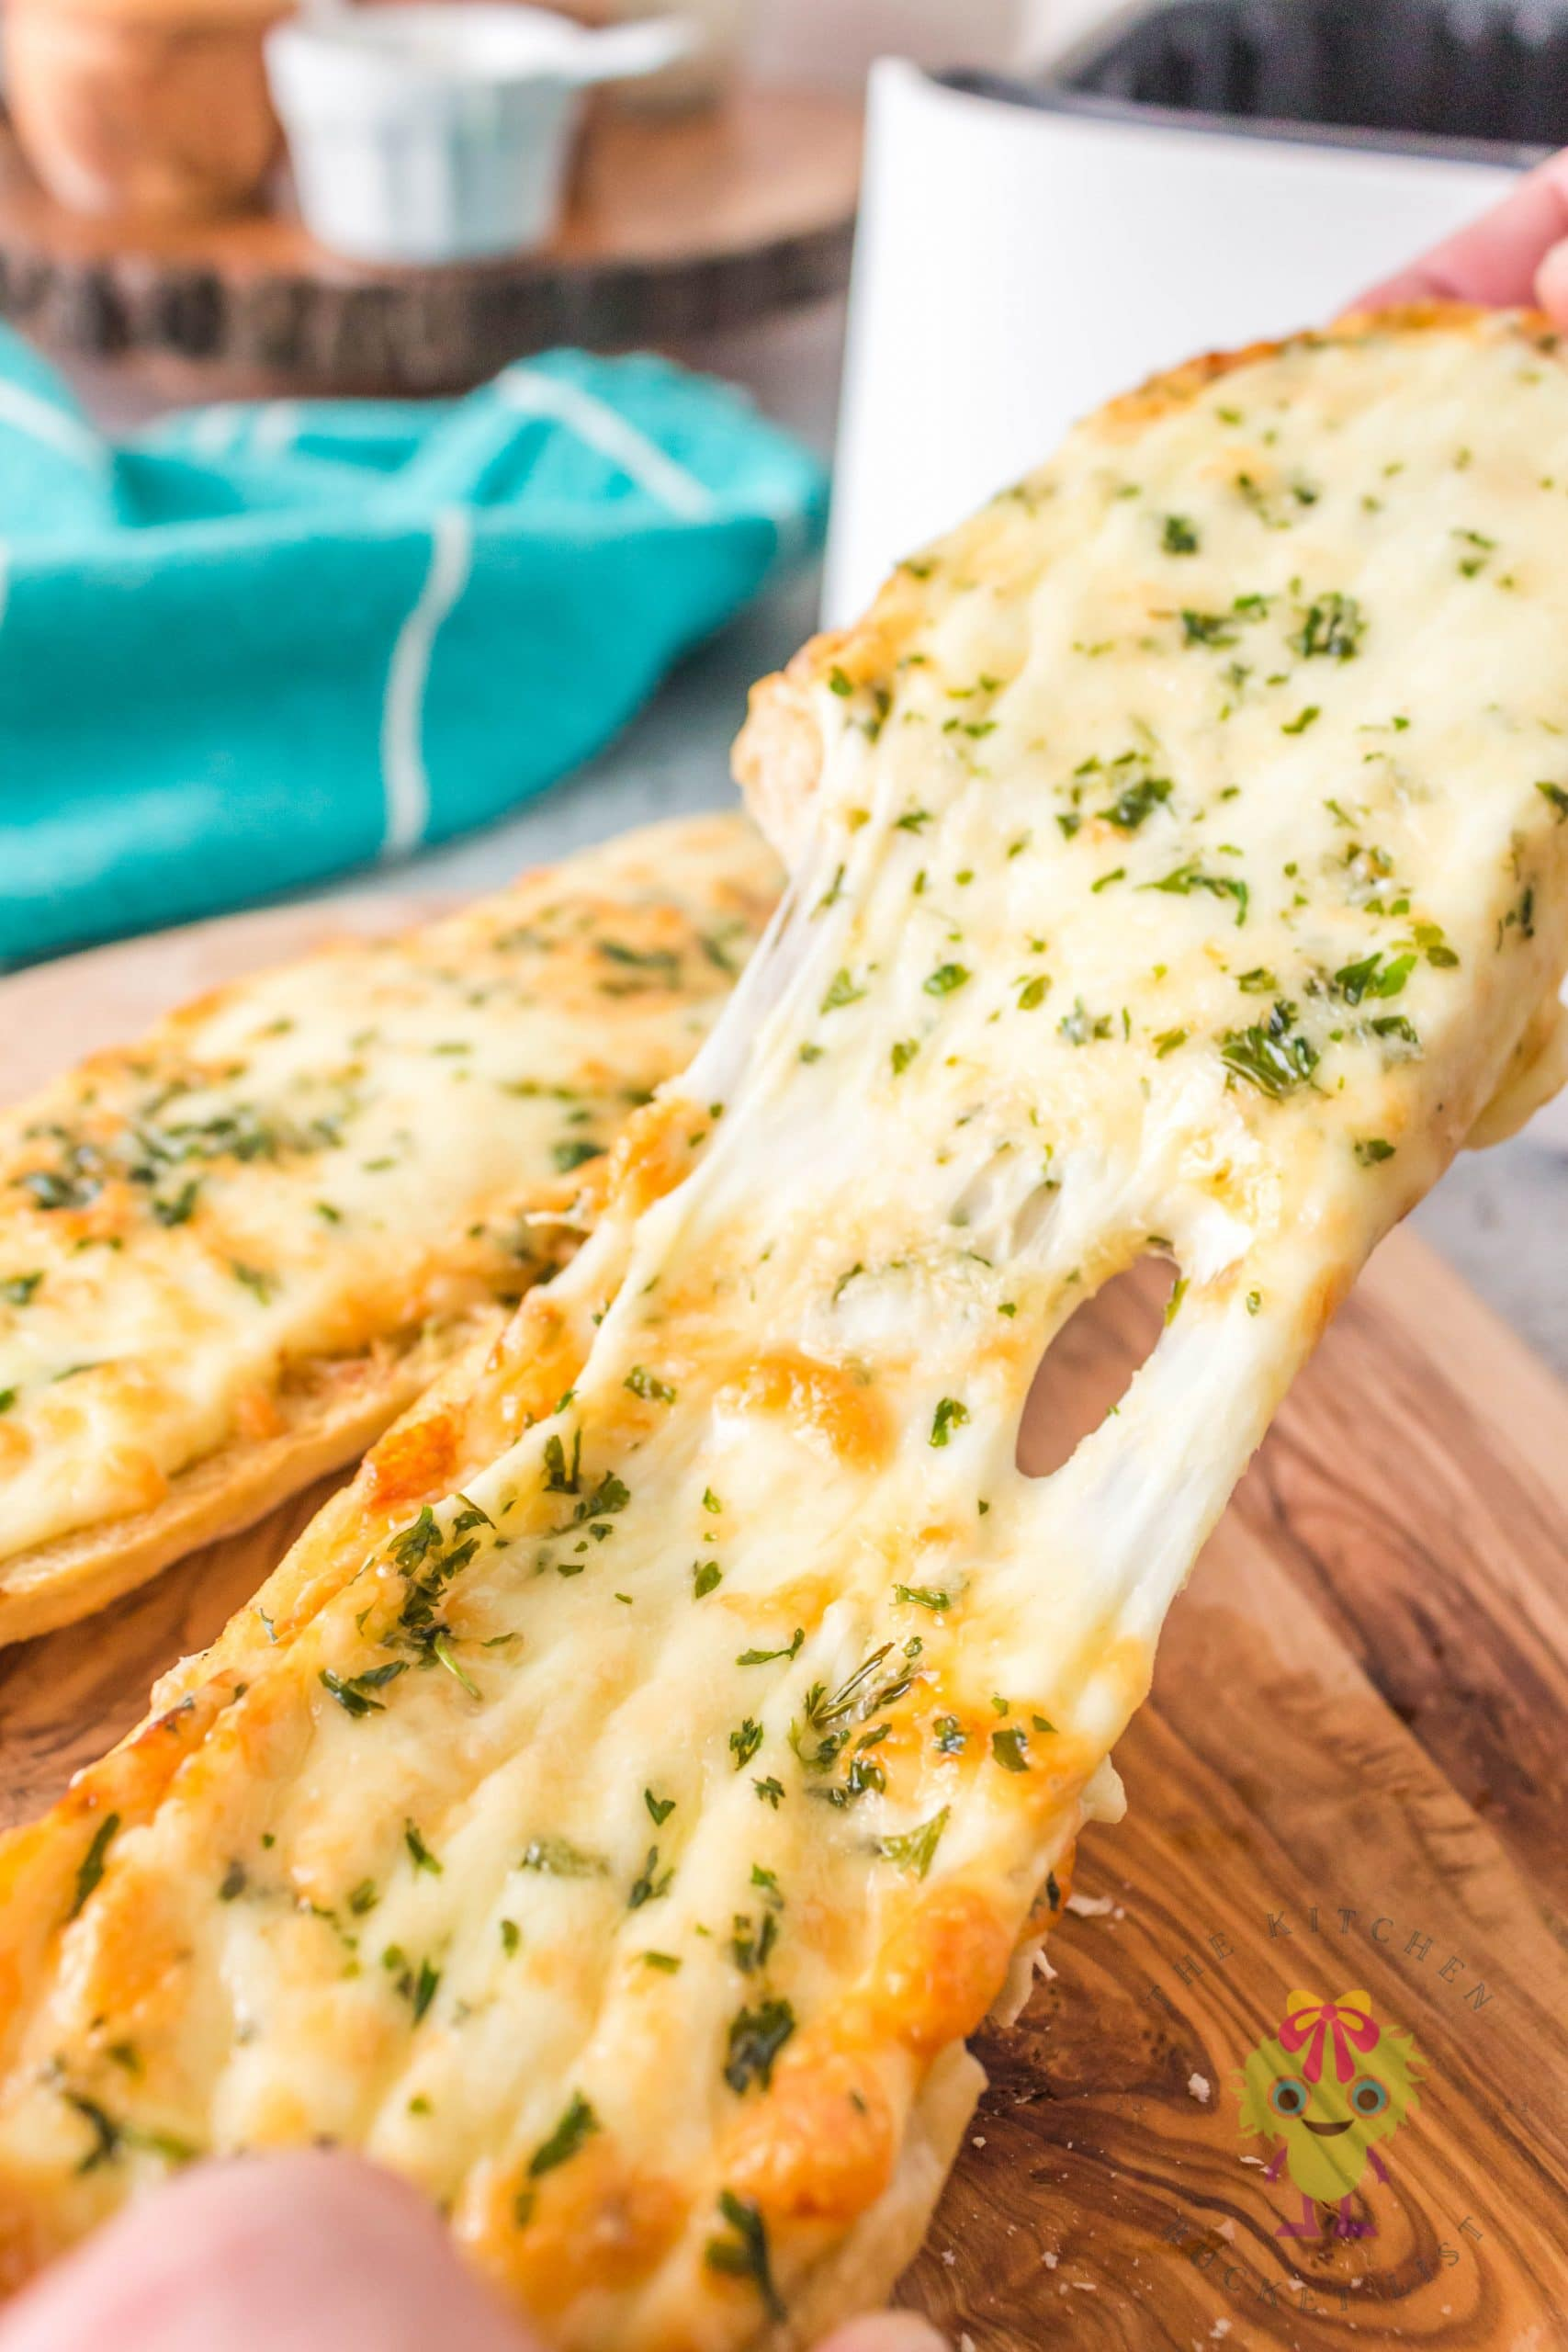 Cut cheese bread pulled apart